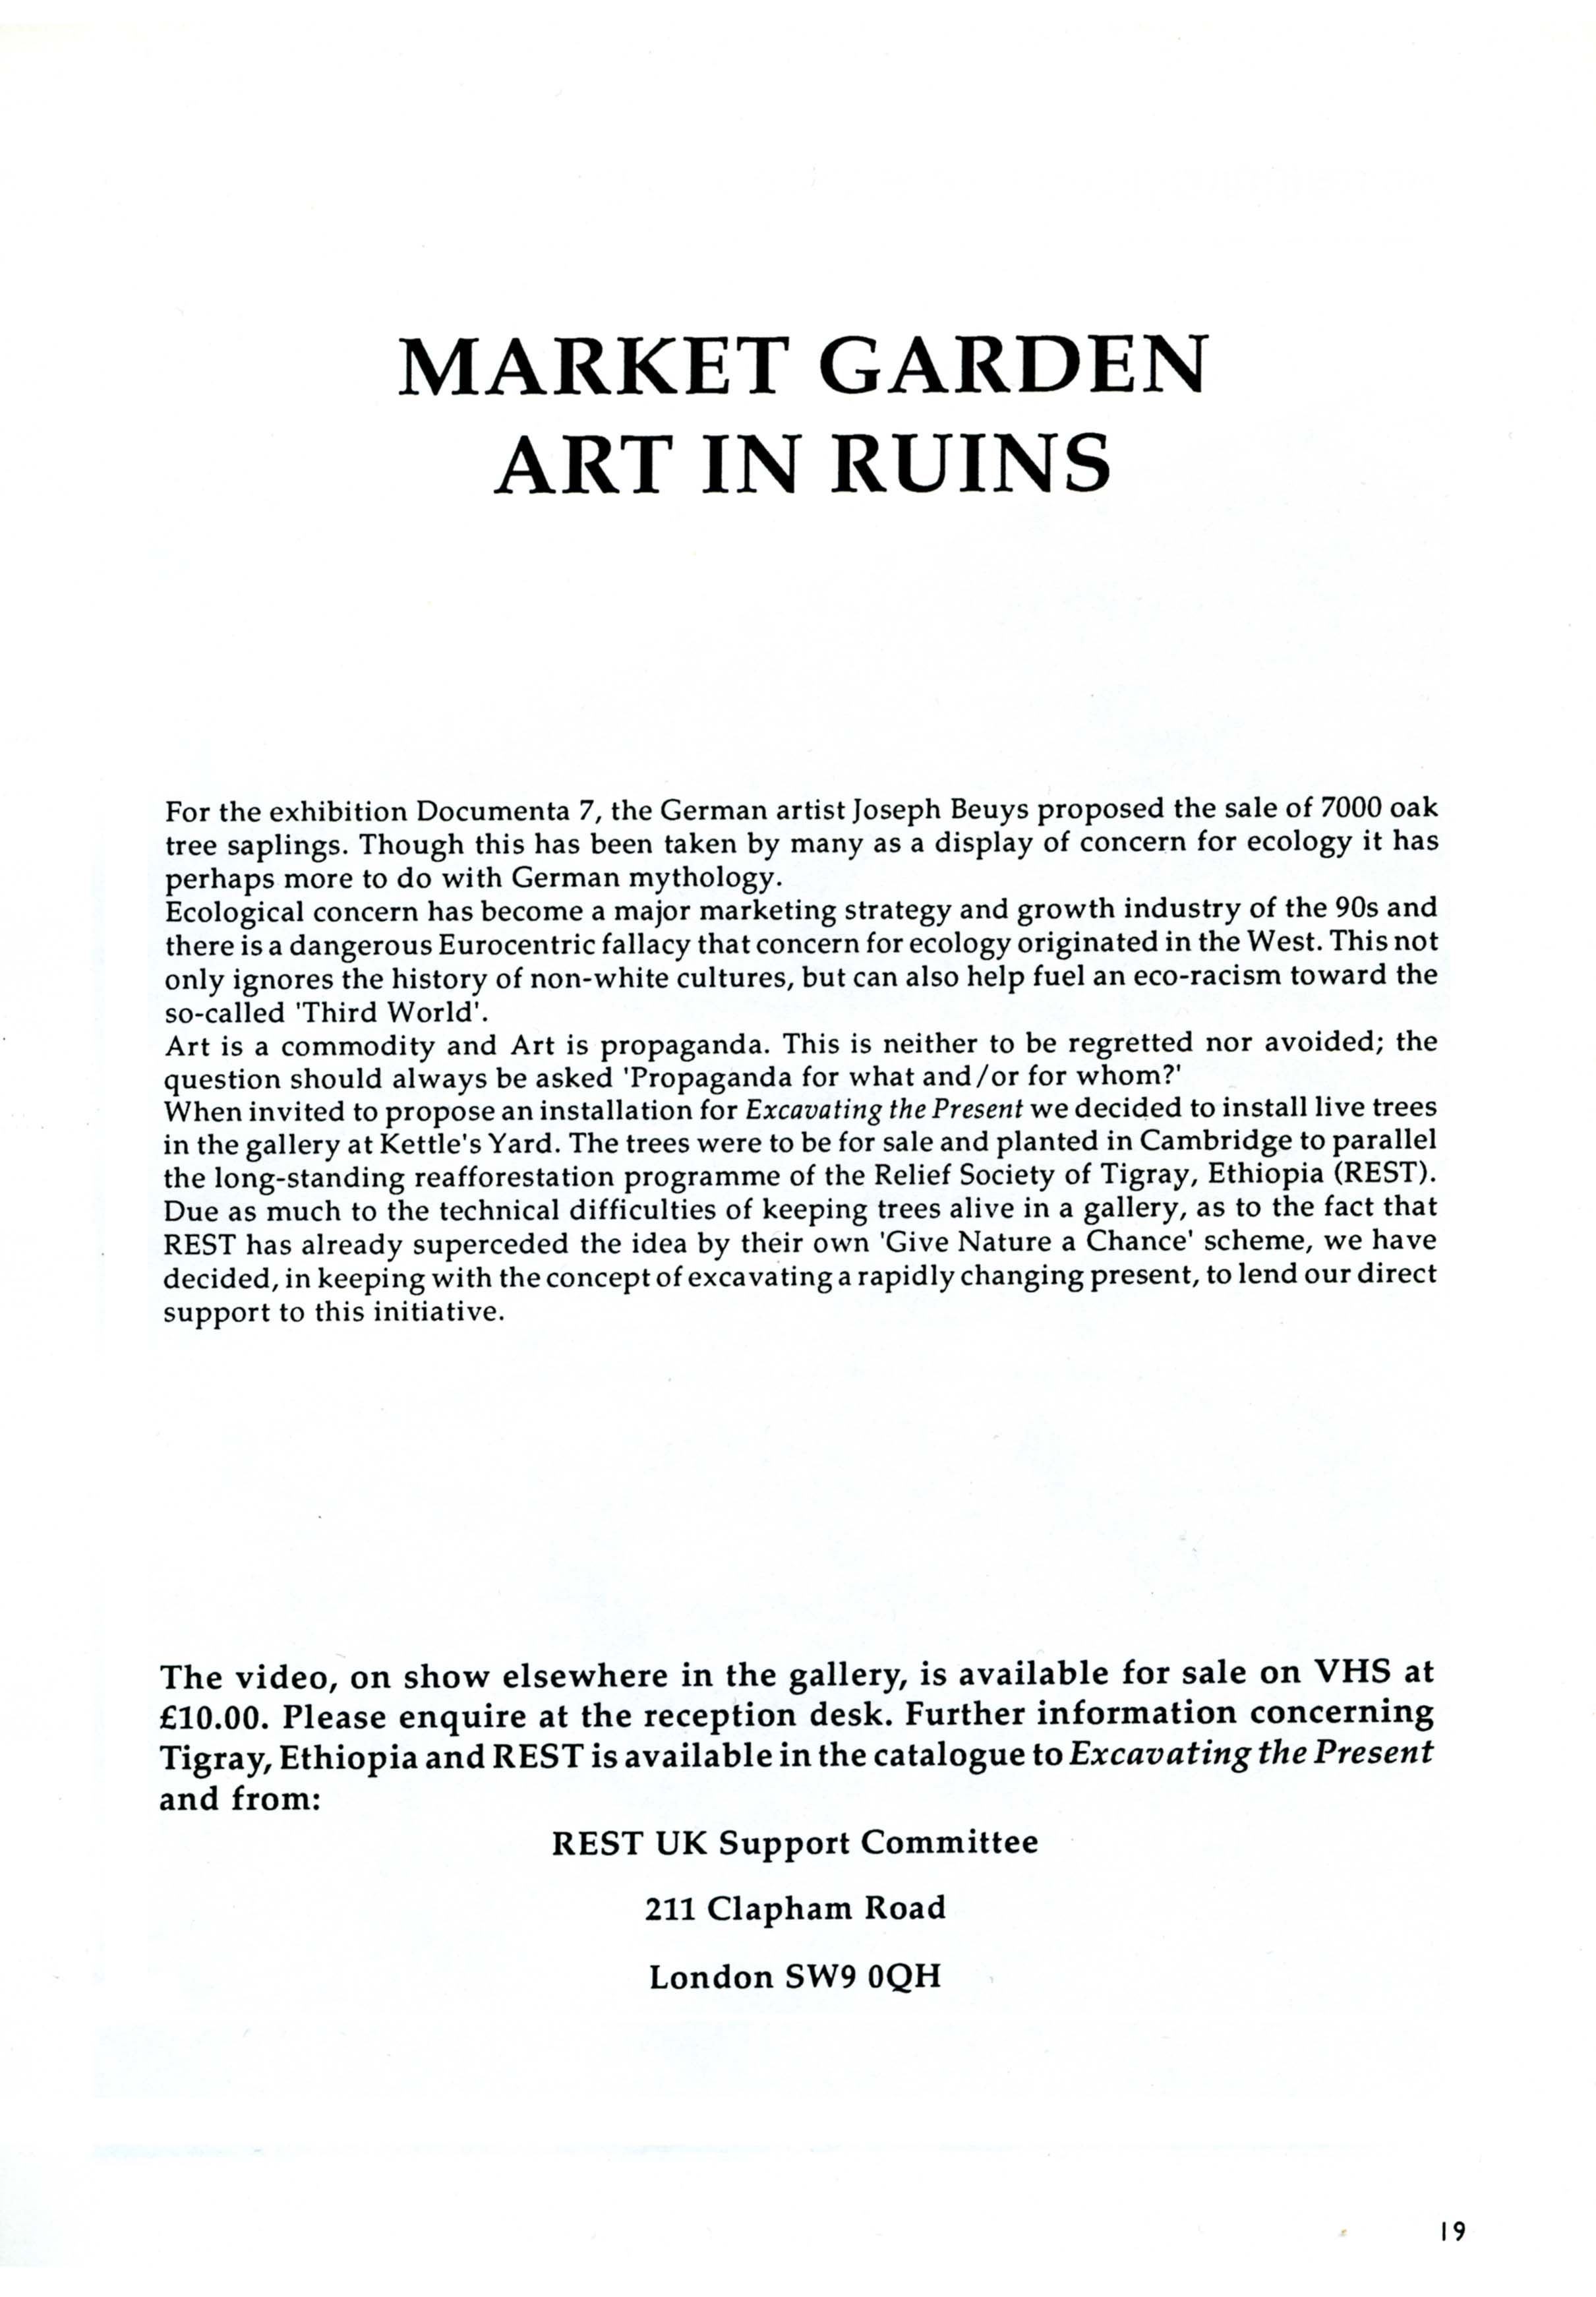 MARKET GARDEN Catalogue Text by Art in Ruins EXCAVATING THE PRESENT Kettle's Yard, Cambridge 1991